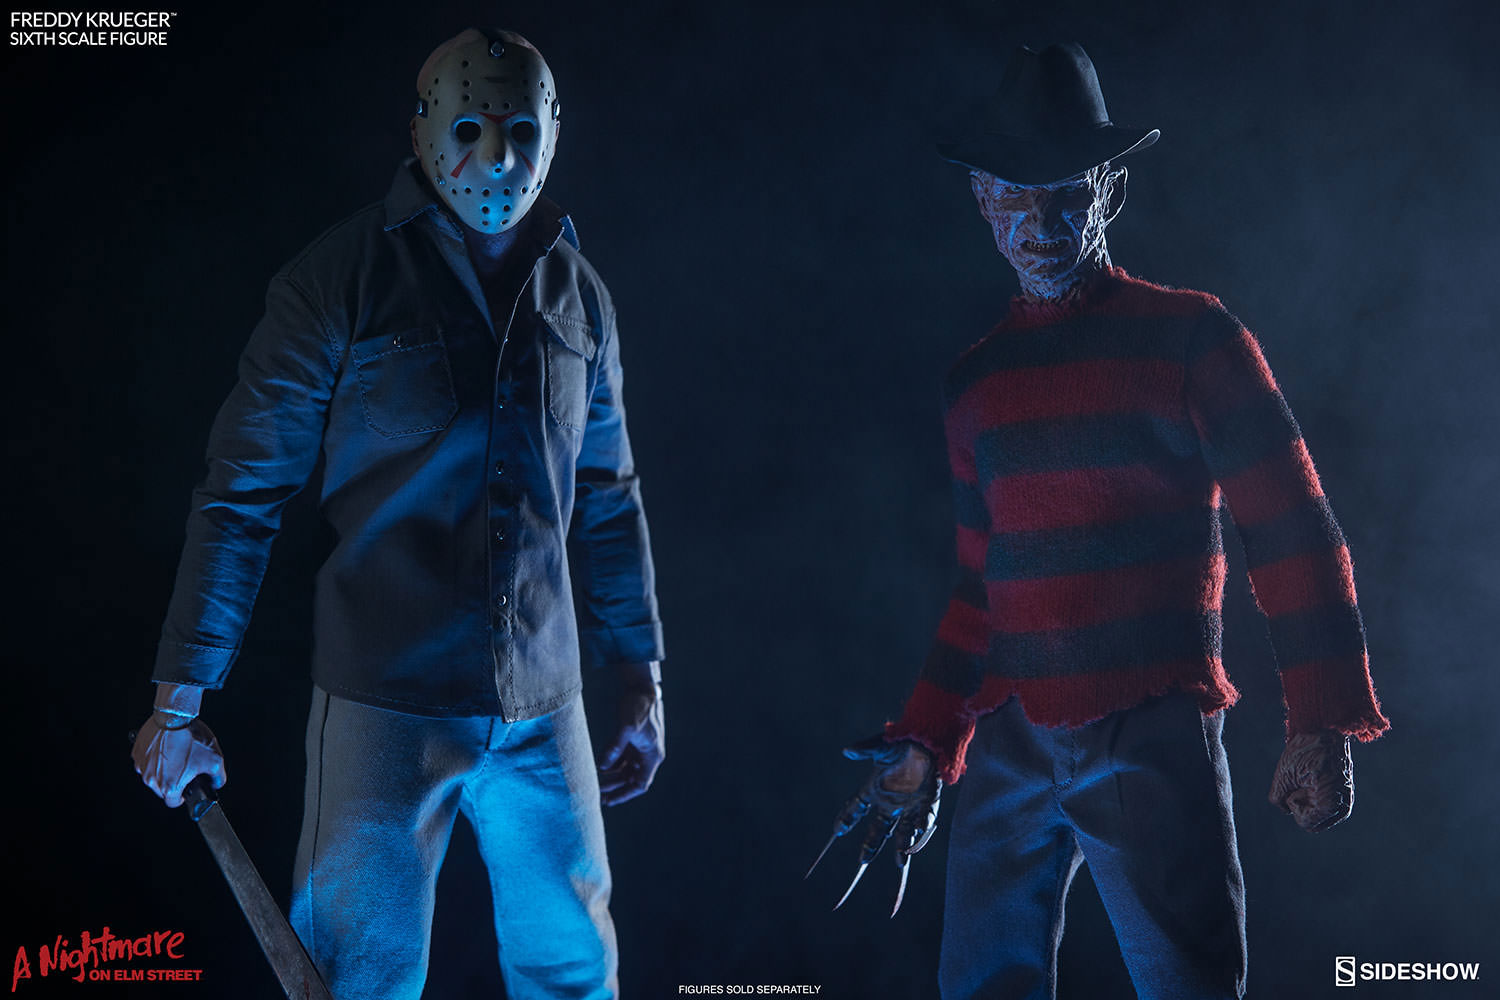 sideshow-nightmare-on-elm-street-freddy-krueger-sixth-scale-fgure-12